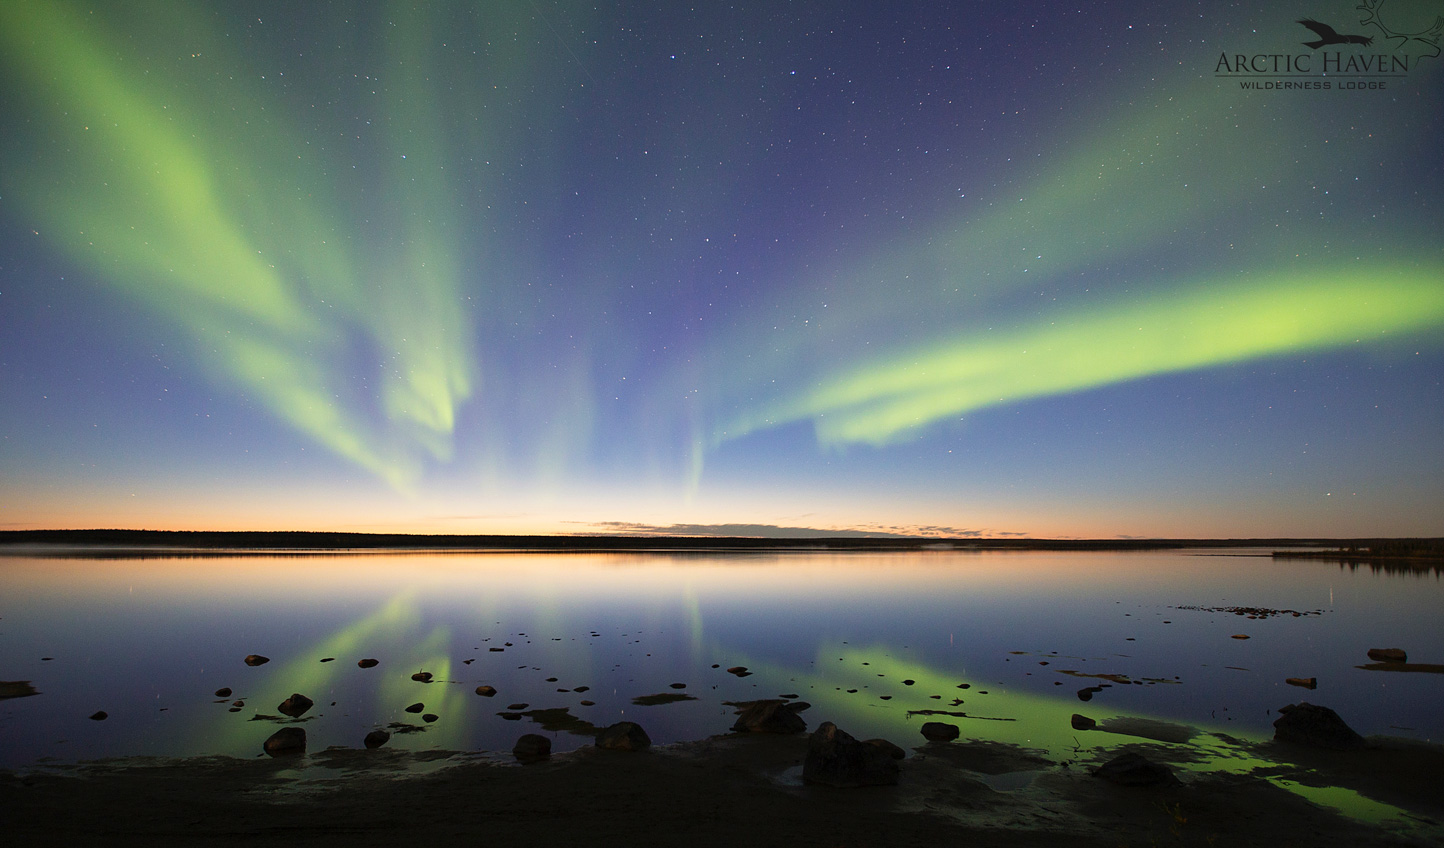 Watch the aurora dance across the sky